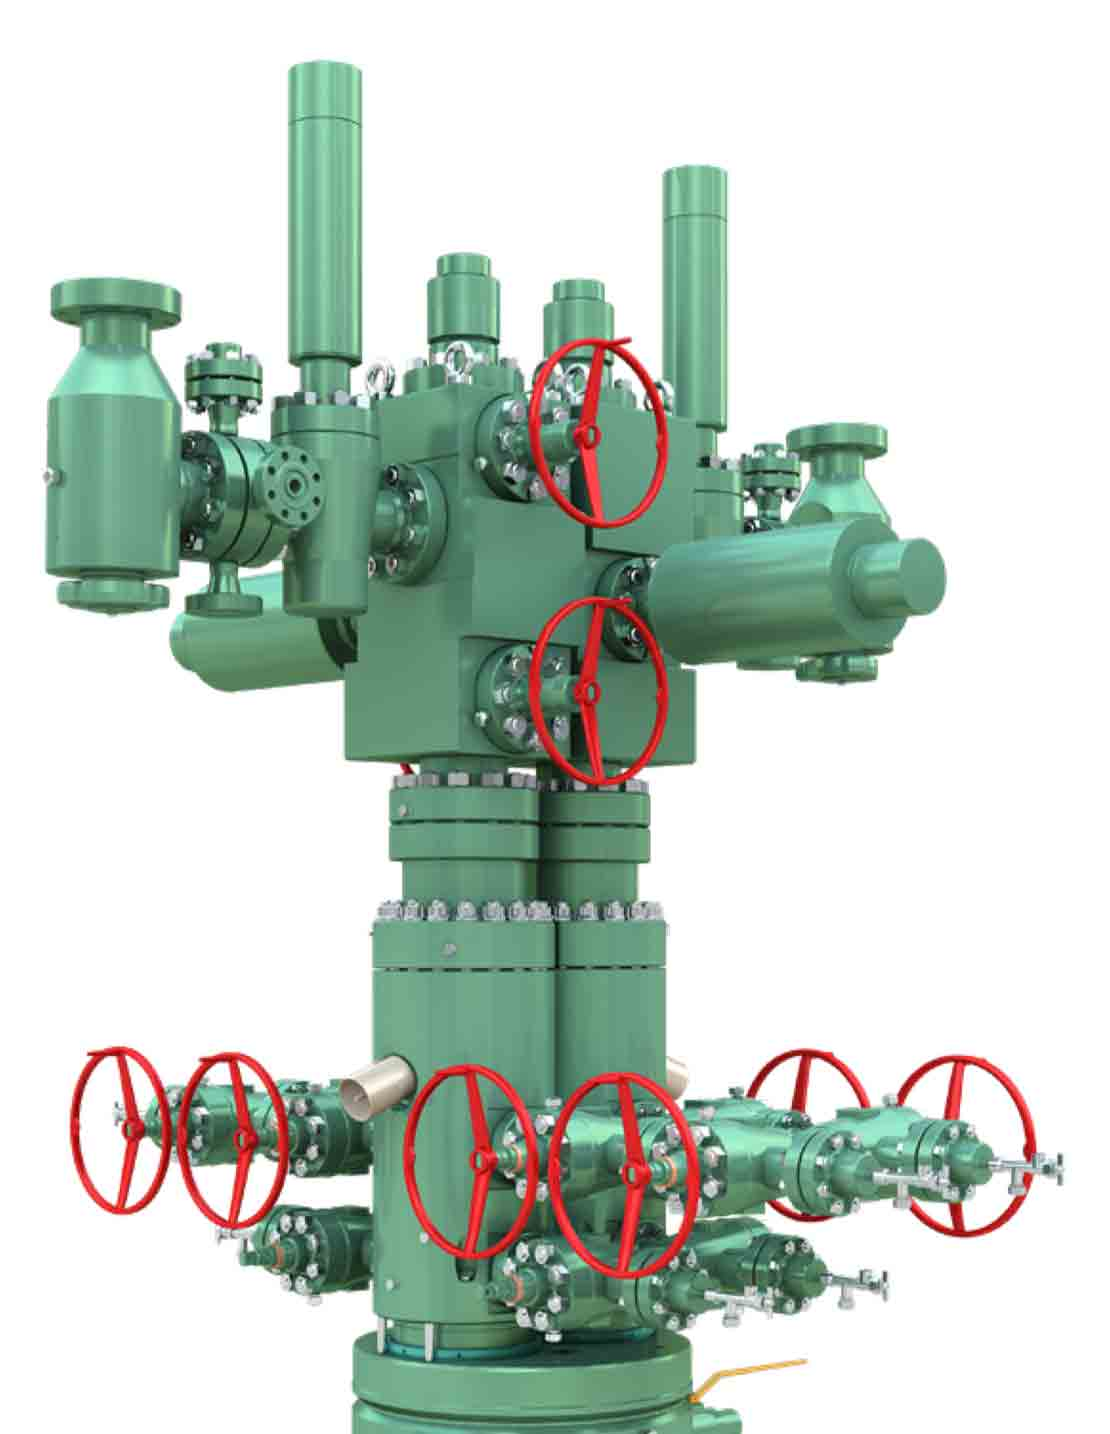 CSW Conductor-Sharing Wellhead System